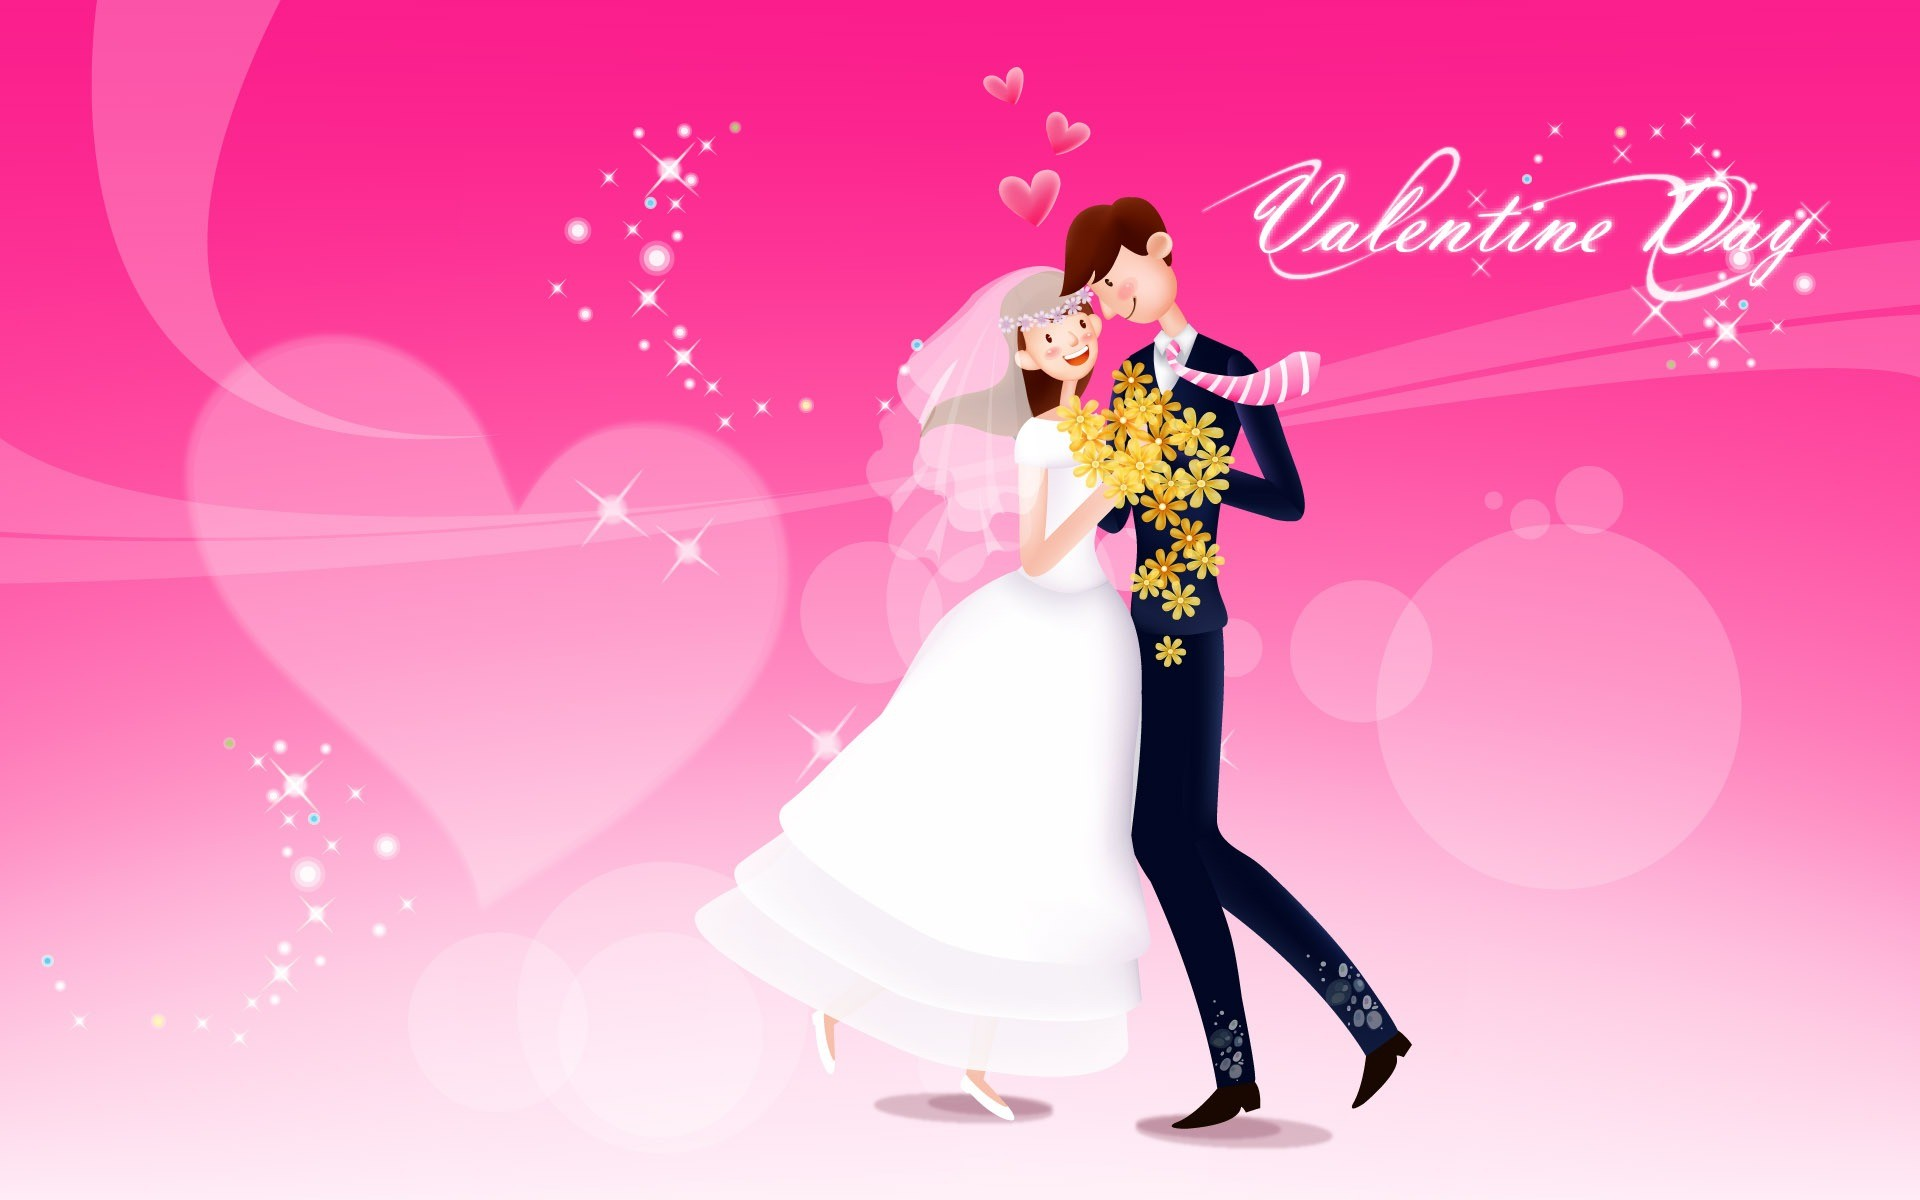 Valentine Day Love Dance WallPaper HD – https://imashon.com/love